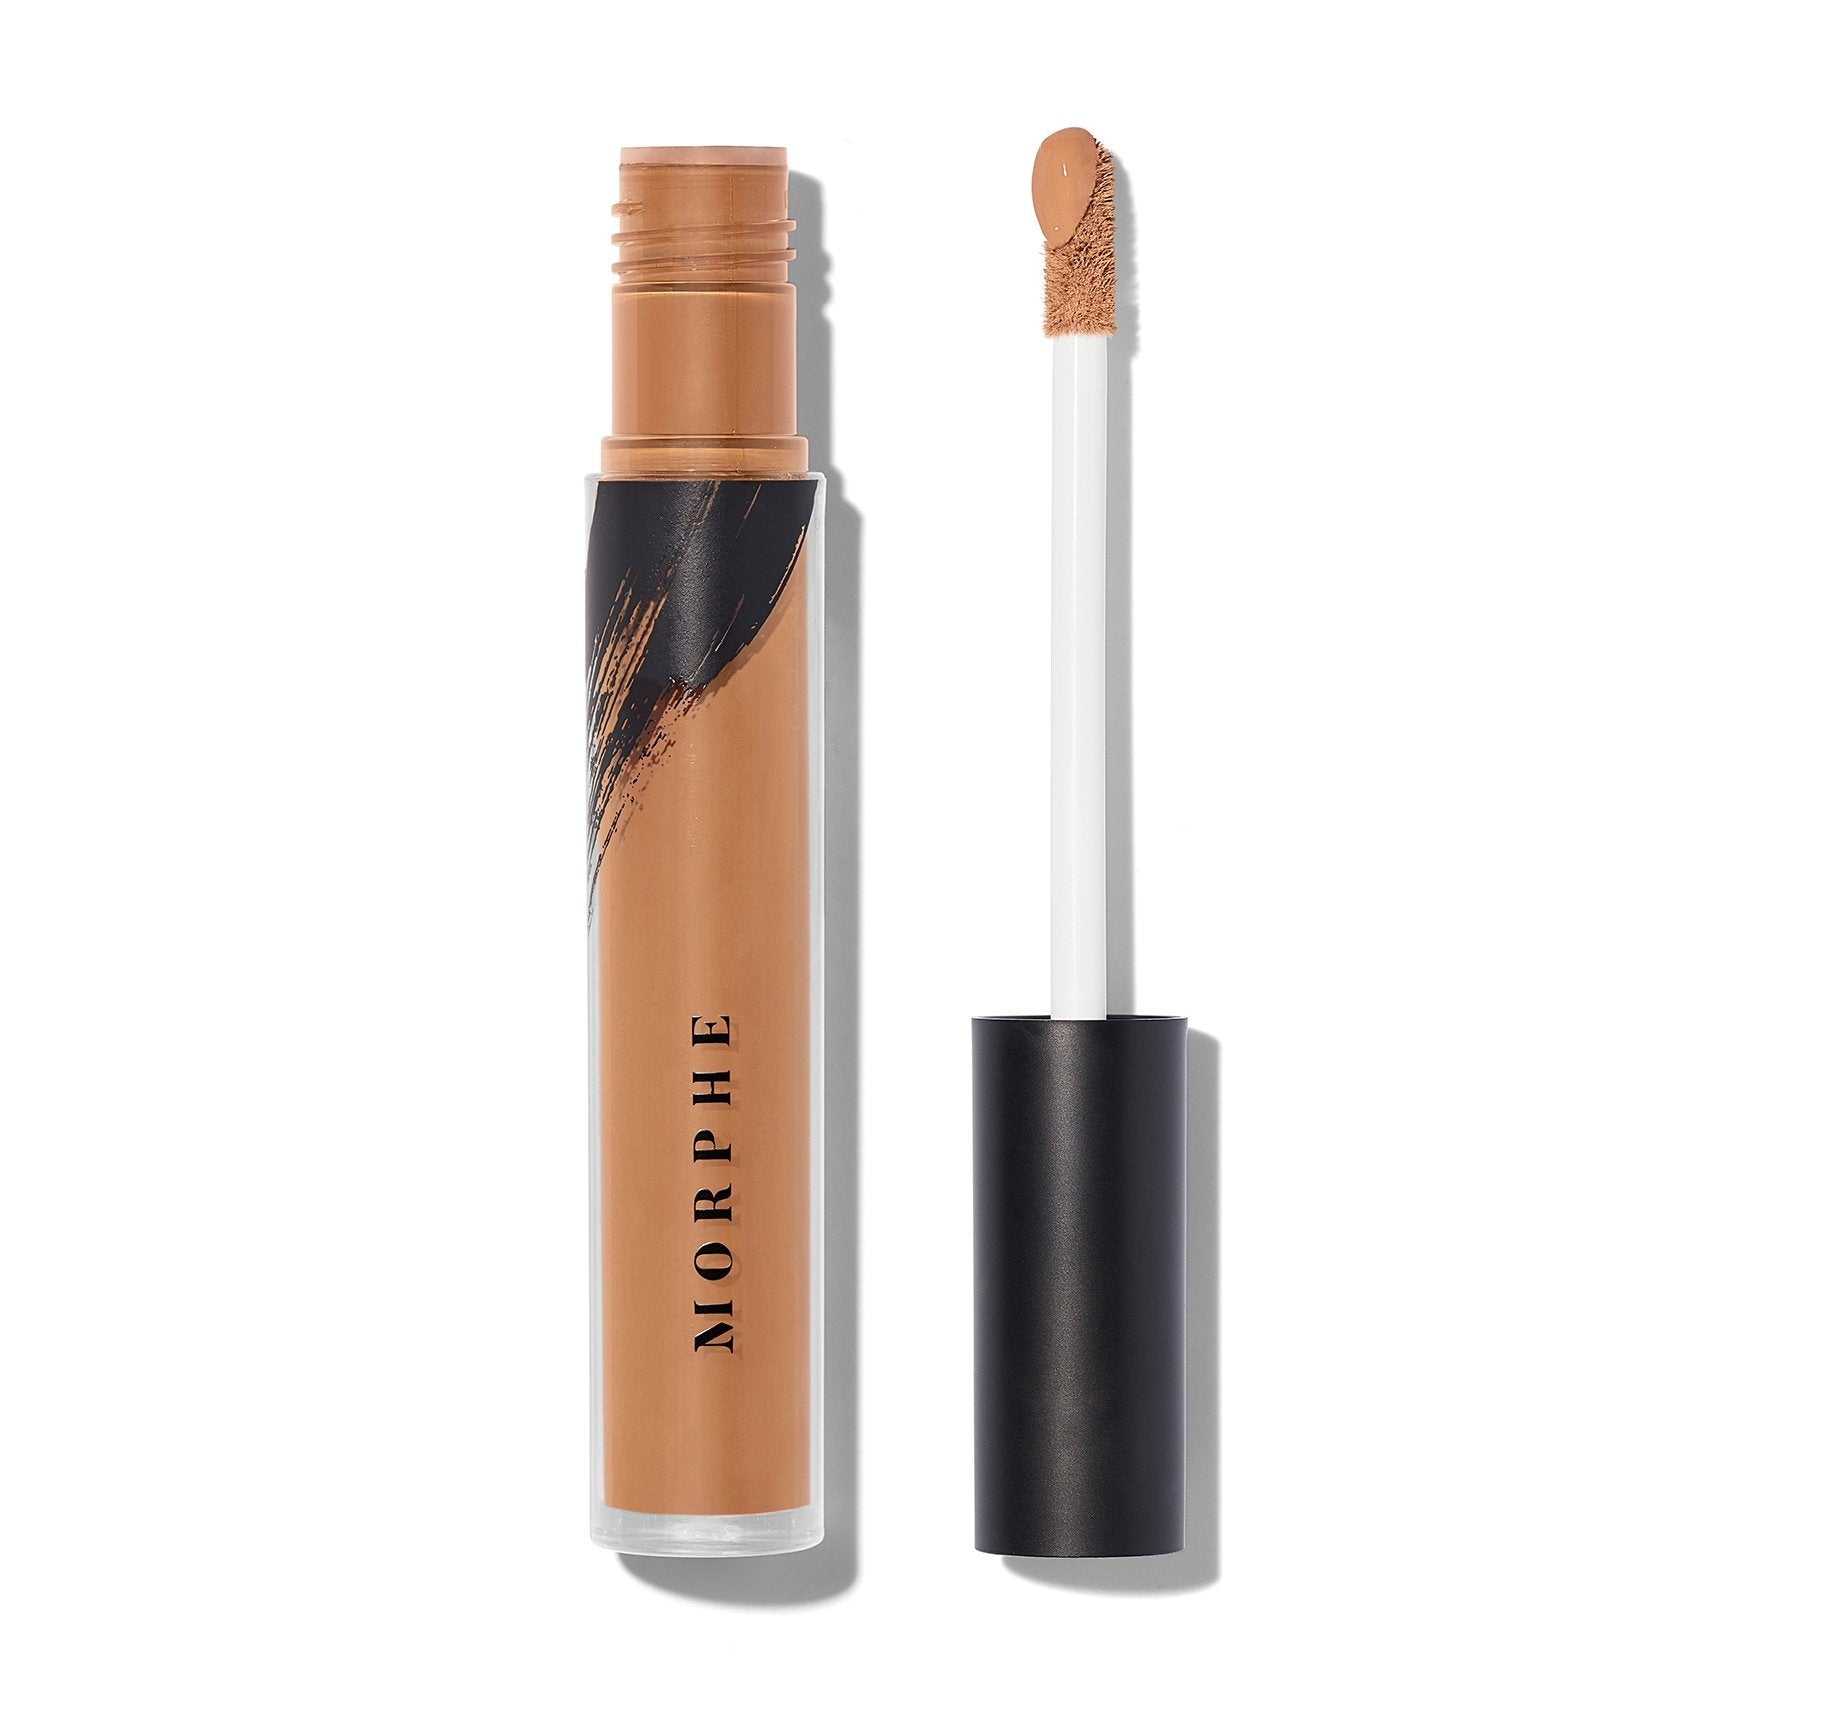 FLUIDITY FULL-COVERAGE CONCEALER - C3.45, view larger image